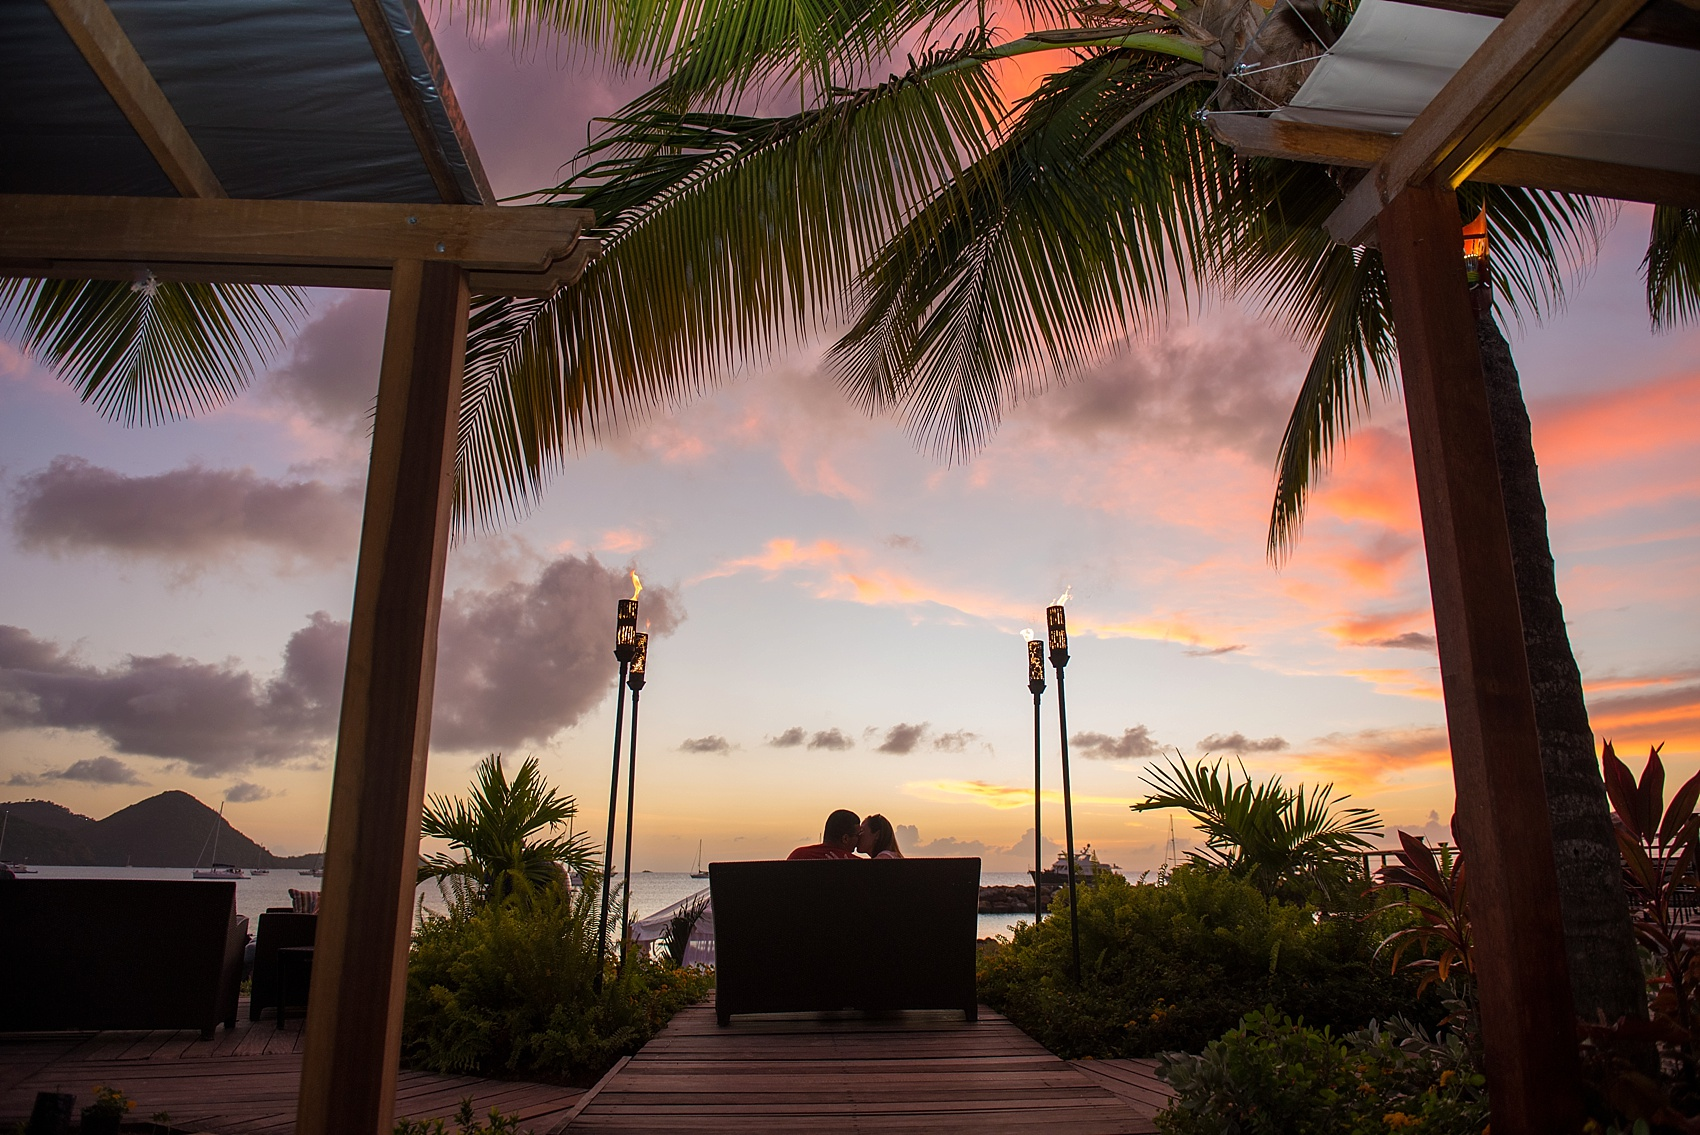 Sunset photo on St. Lucia Proposal ideas - beachside romance at an oceanfront dinner at The Landings resort. Images by destination wedding photographer Mikkel Paige Photography.